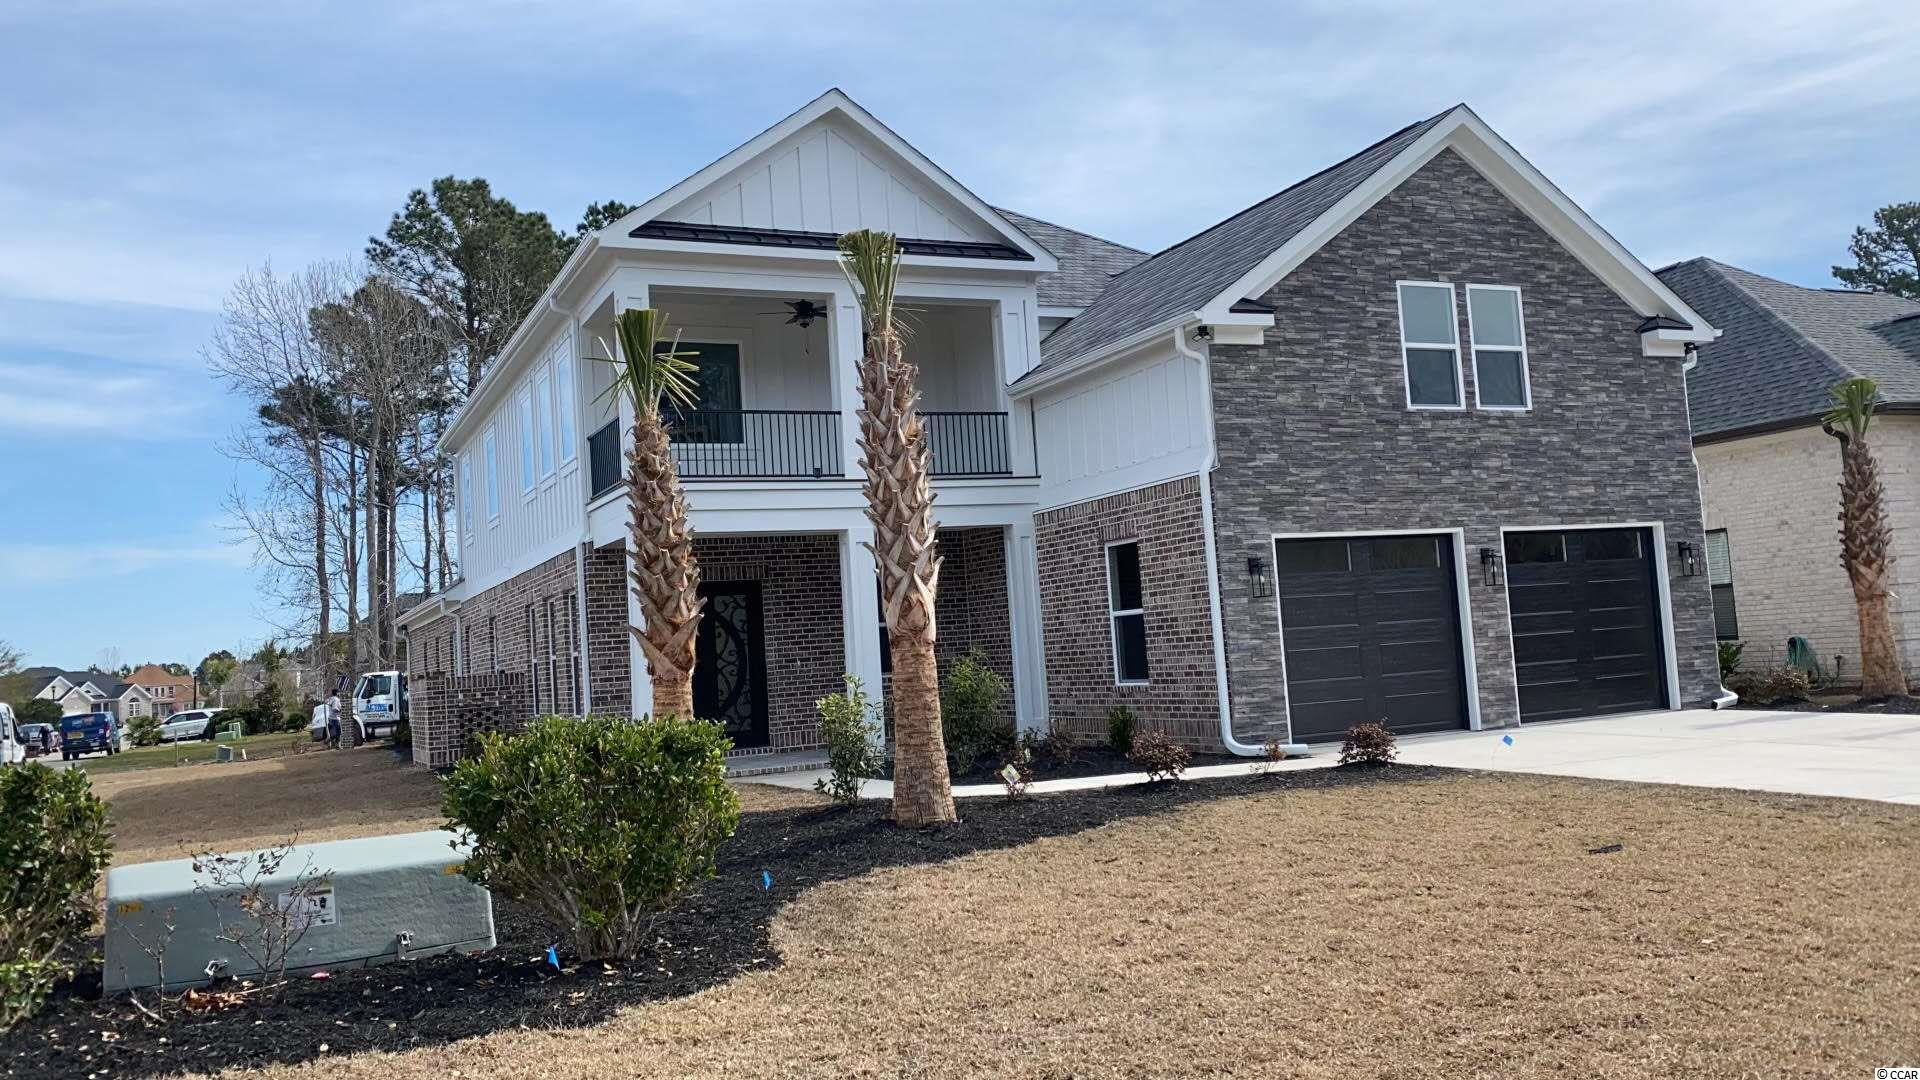 This 5 bedroom 4.5 bath in the sought after Carolina Waterway Plantation will be absolutely beautiful! Located on a corner lot towards the front of the gated community. As you enter this over 3500 heated sqft home will notice the large two story foyer and a staircase heading to the second level. The main level will have a large open kitchen living room concept with an over sized master suite and another full bedroom with its own bathroom. As you head upstairs will be a large game room with 3 more bedrooms and 2 more bathrooms. Not only will the inside of this home be packed with high end finishes and upgrades the backyard area will truly be paradise with a fully equipped outdoor kitchen and a 12x24 POOL and 5x5 hot tub!. Carolina Waterway Plantation is a 100% custom home Intra Coastal Waterway community located conveniently to all of Myrtle Beach has to offer and minutes away to the beach! With onsite boat storage, boat ramp and a full size clubhouse pool area you have it all. Book your showing today and still have time to pick out certain finishes and upgrades.